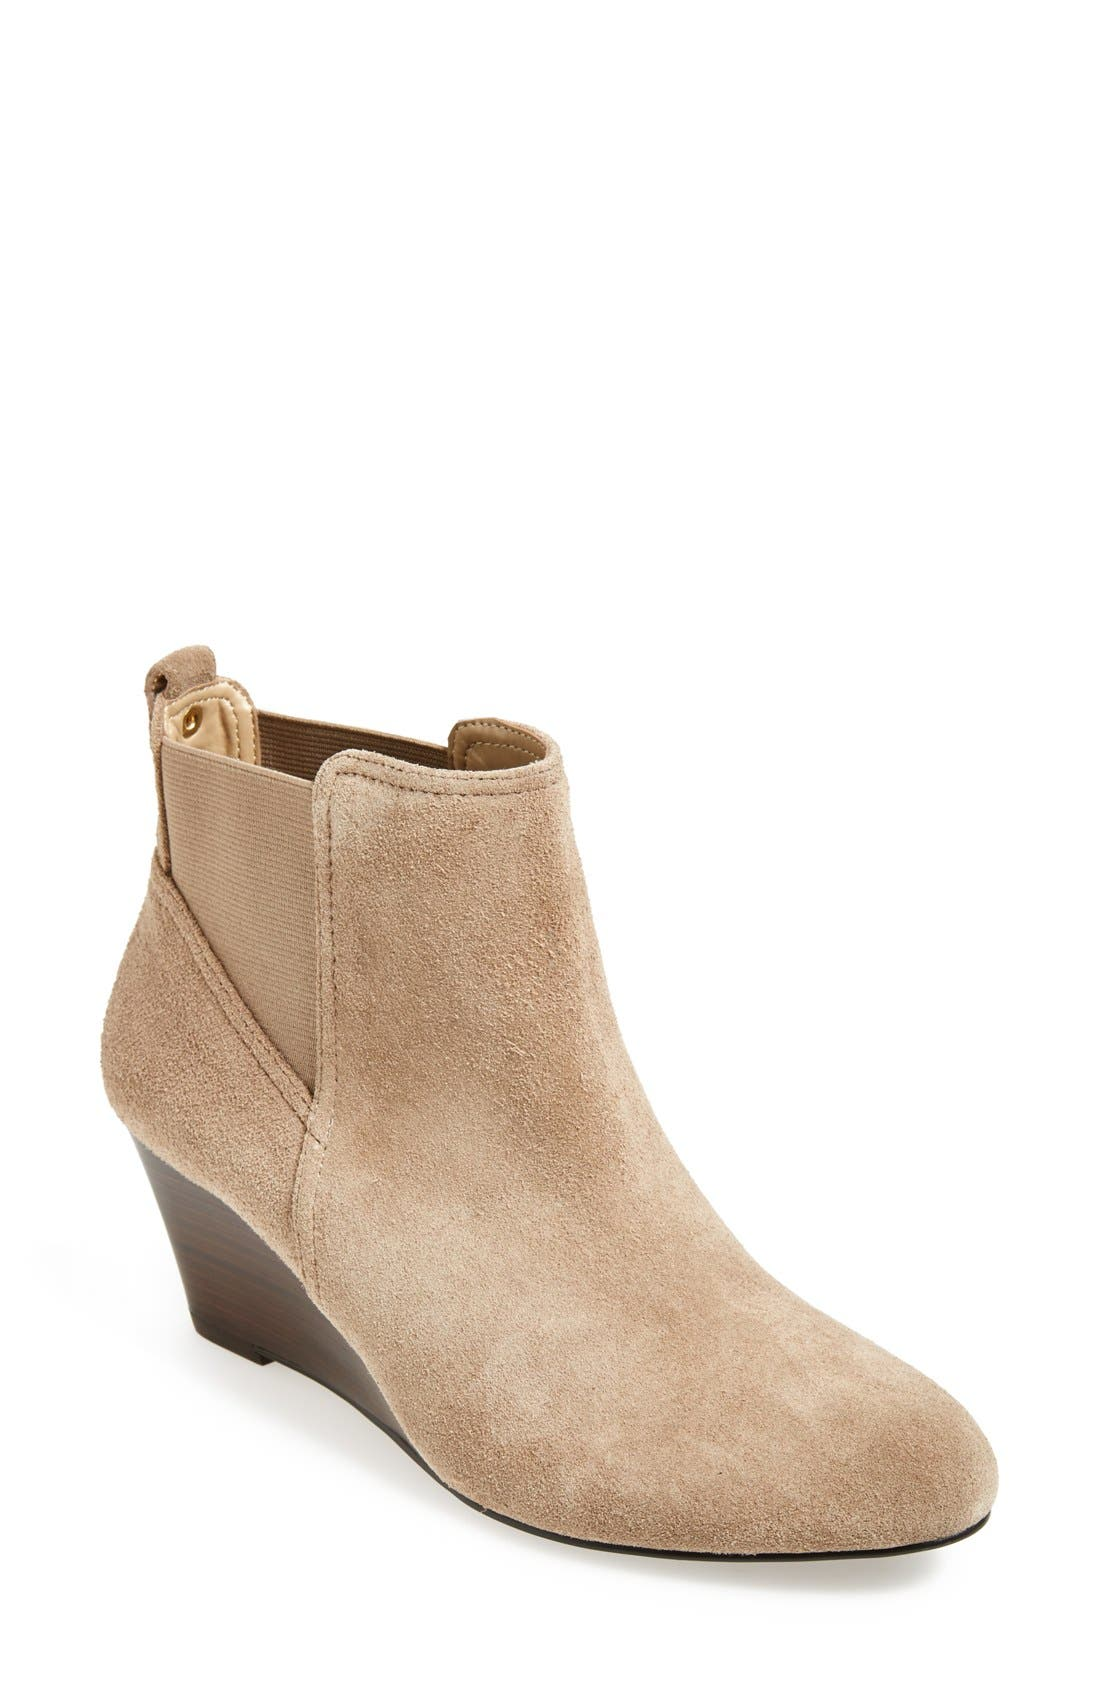 Alternate Image 1 Selected - Sole Society 'Addison' Bootie